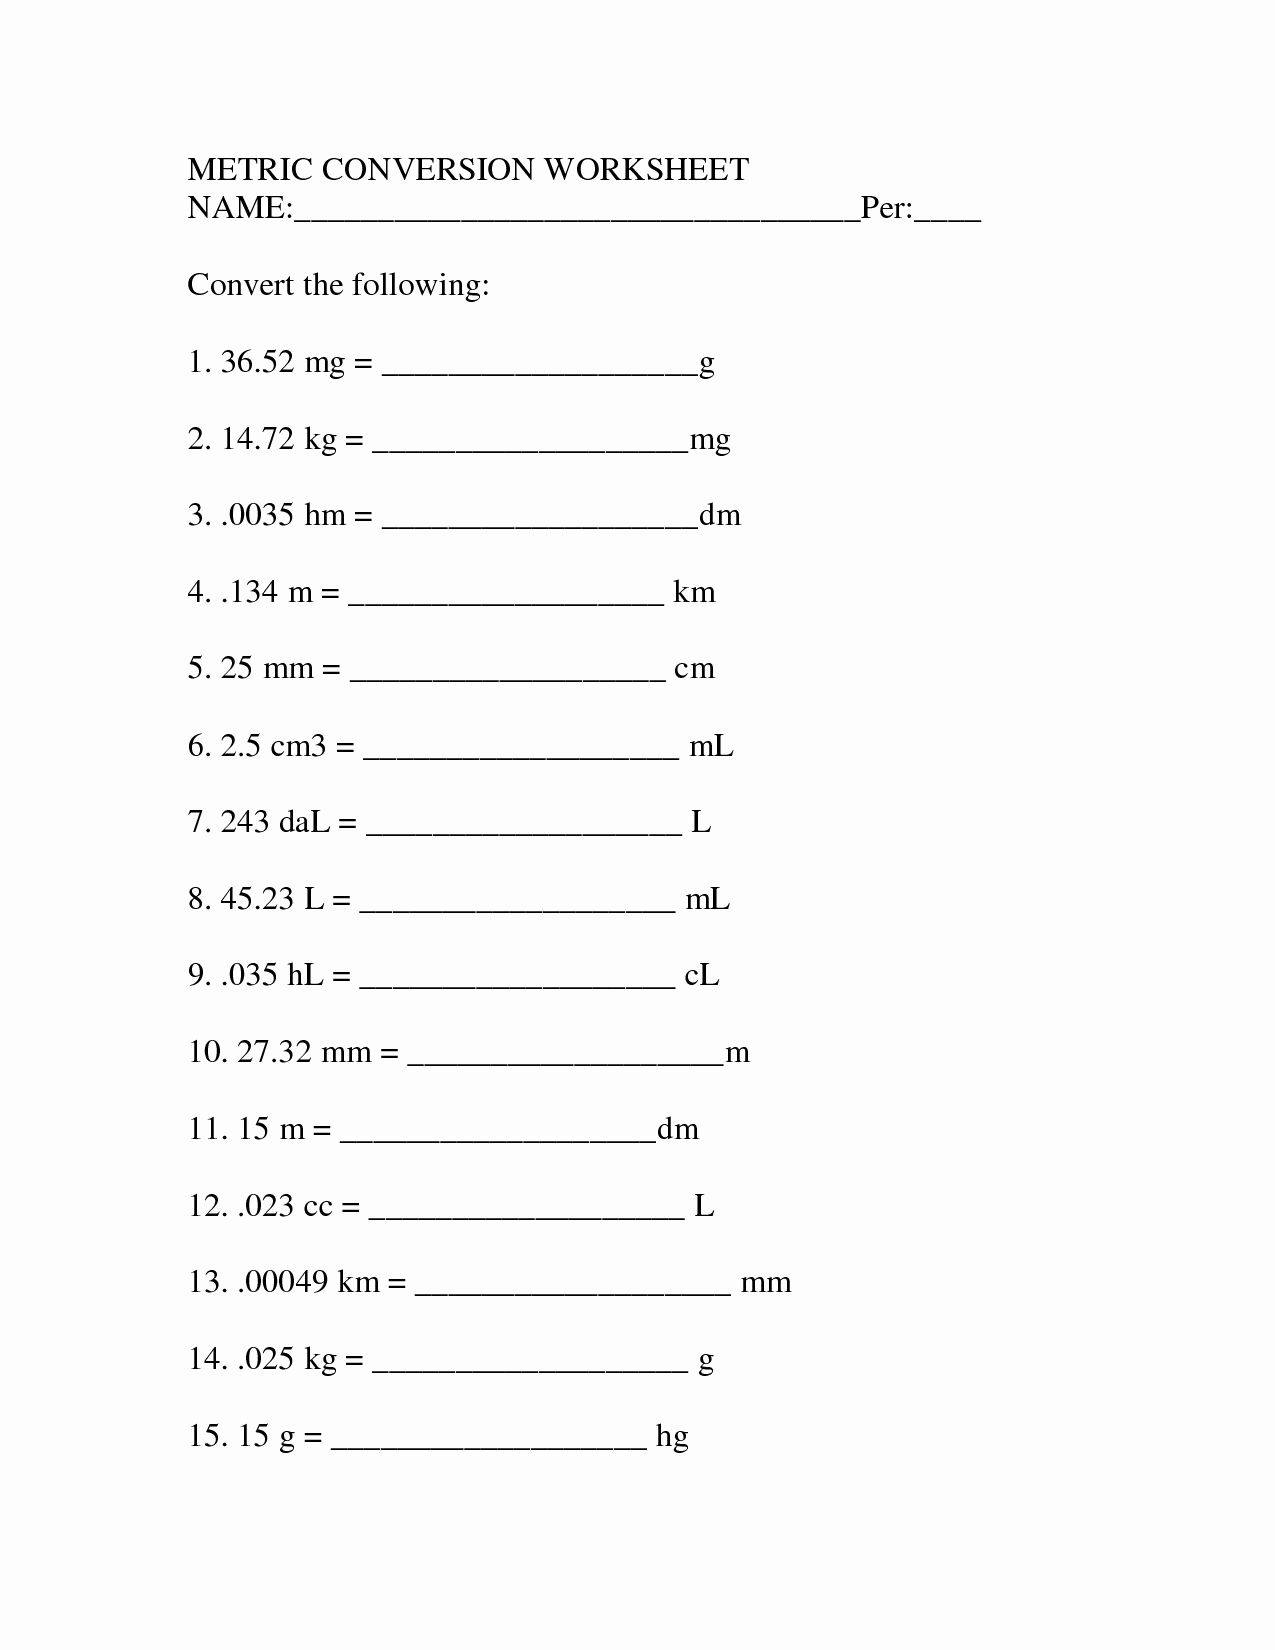 48 English to Metric Conversion Worksheet in 2020